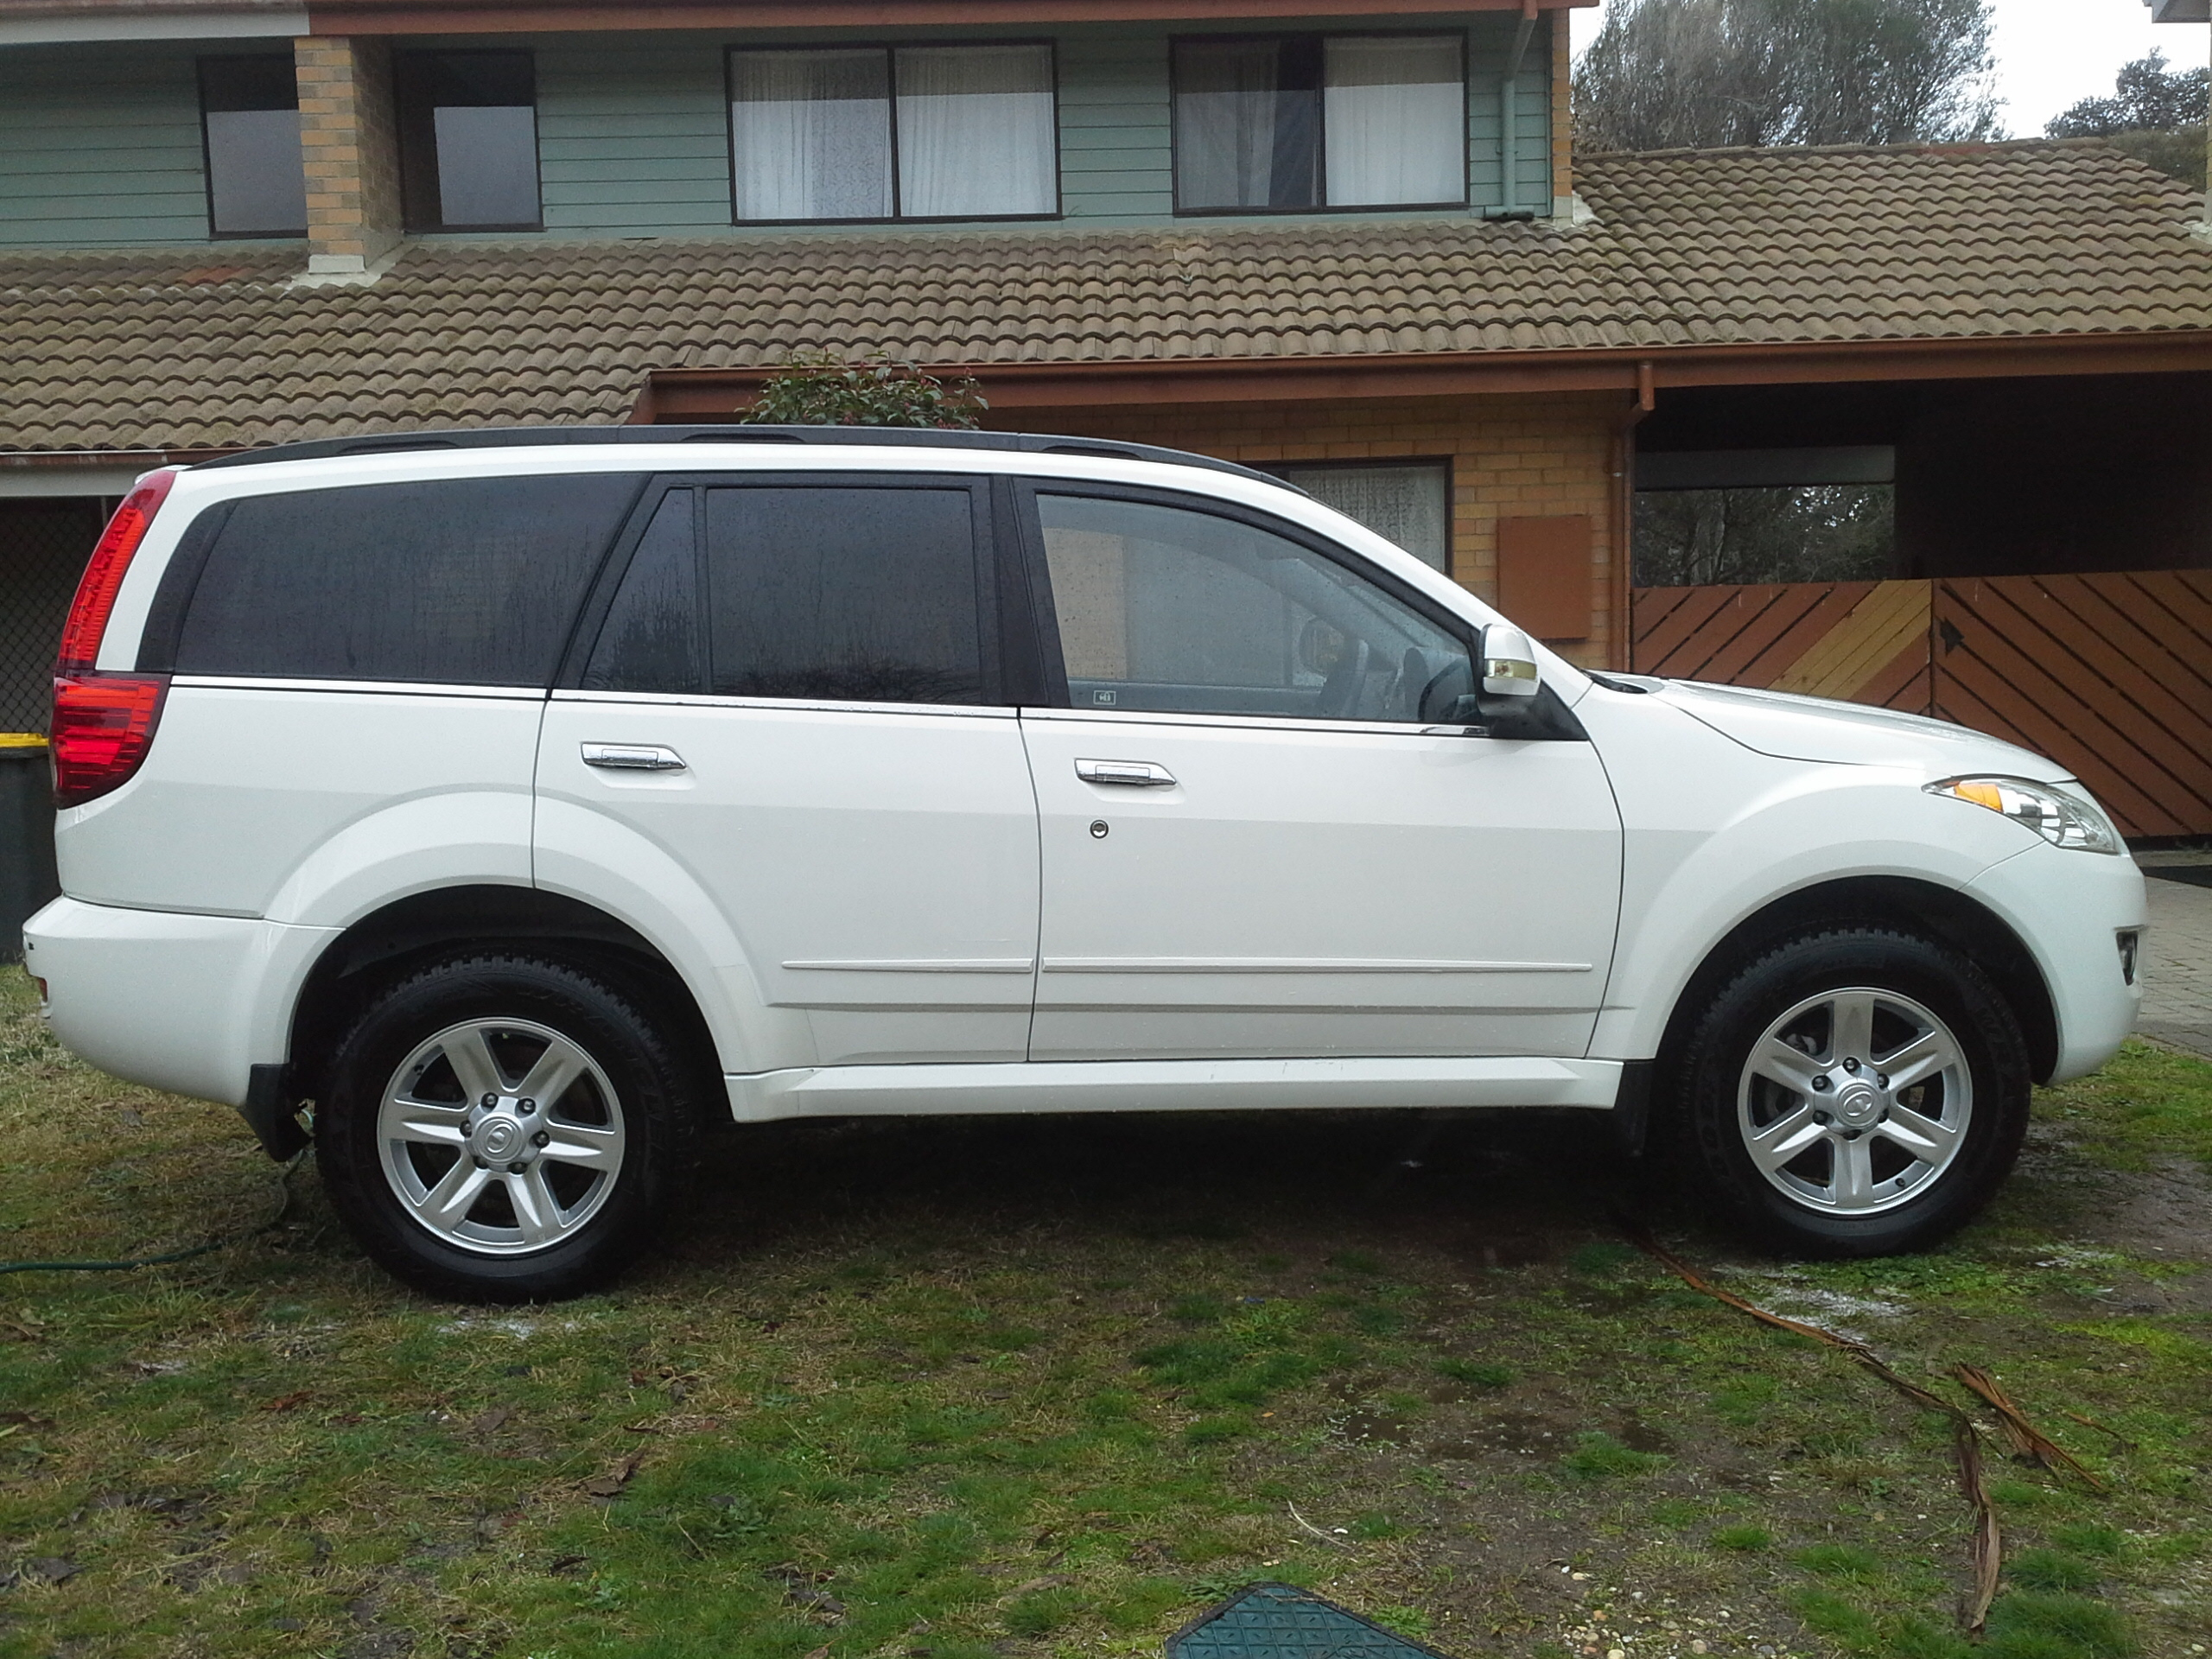 2011 Great Wall Motors X240 (4X4) CC6461KY Car Sales ACT: Canberra